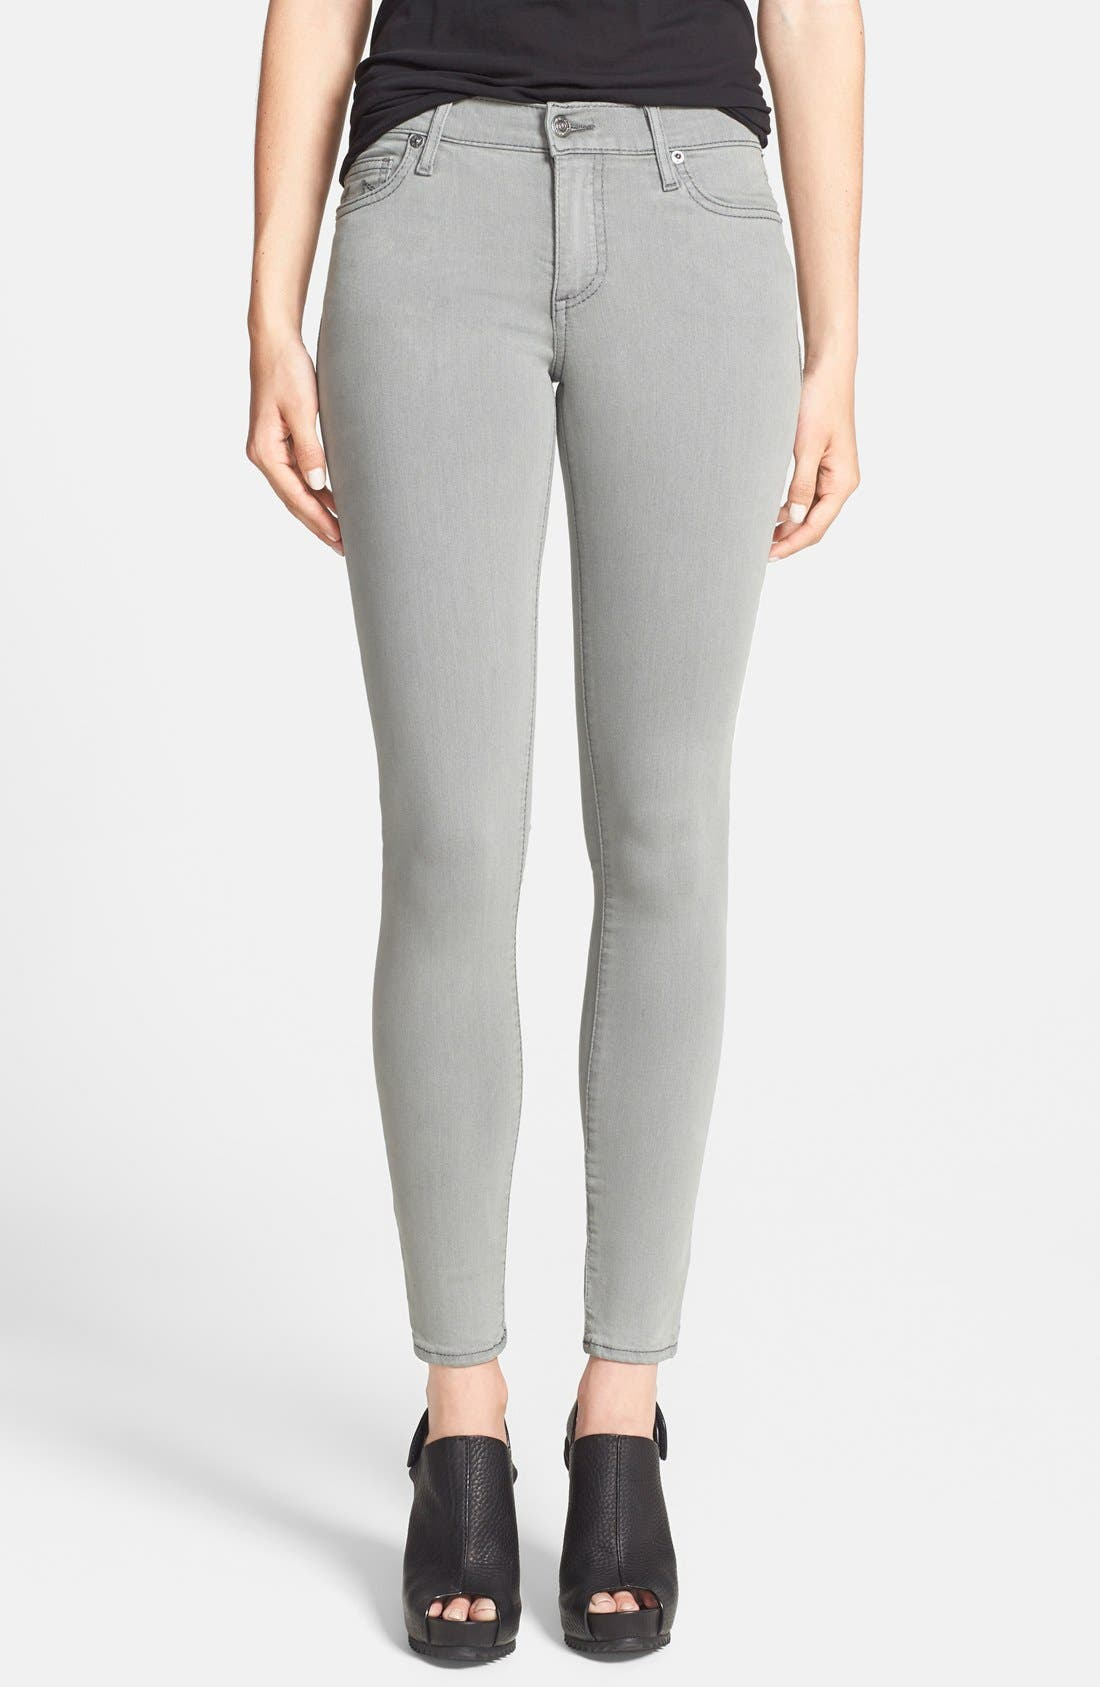 Main Image - True Religion Brand Jeans 'Halle' Skinny Jeans (Protester's Song)